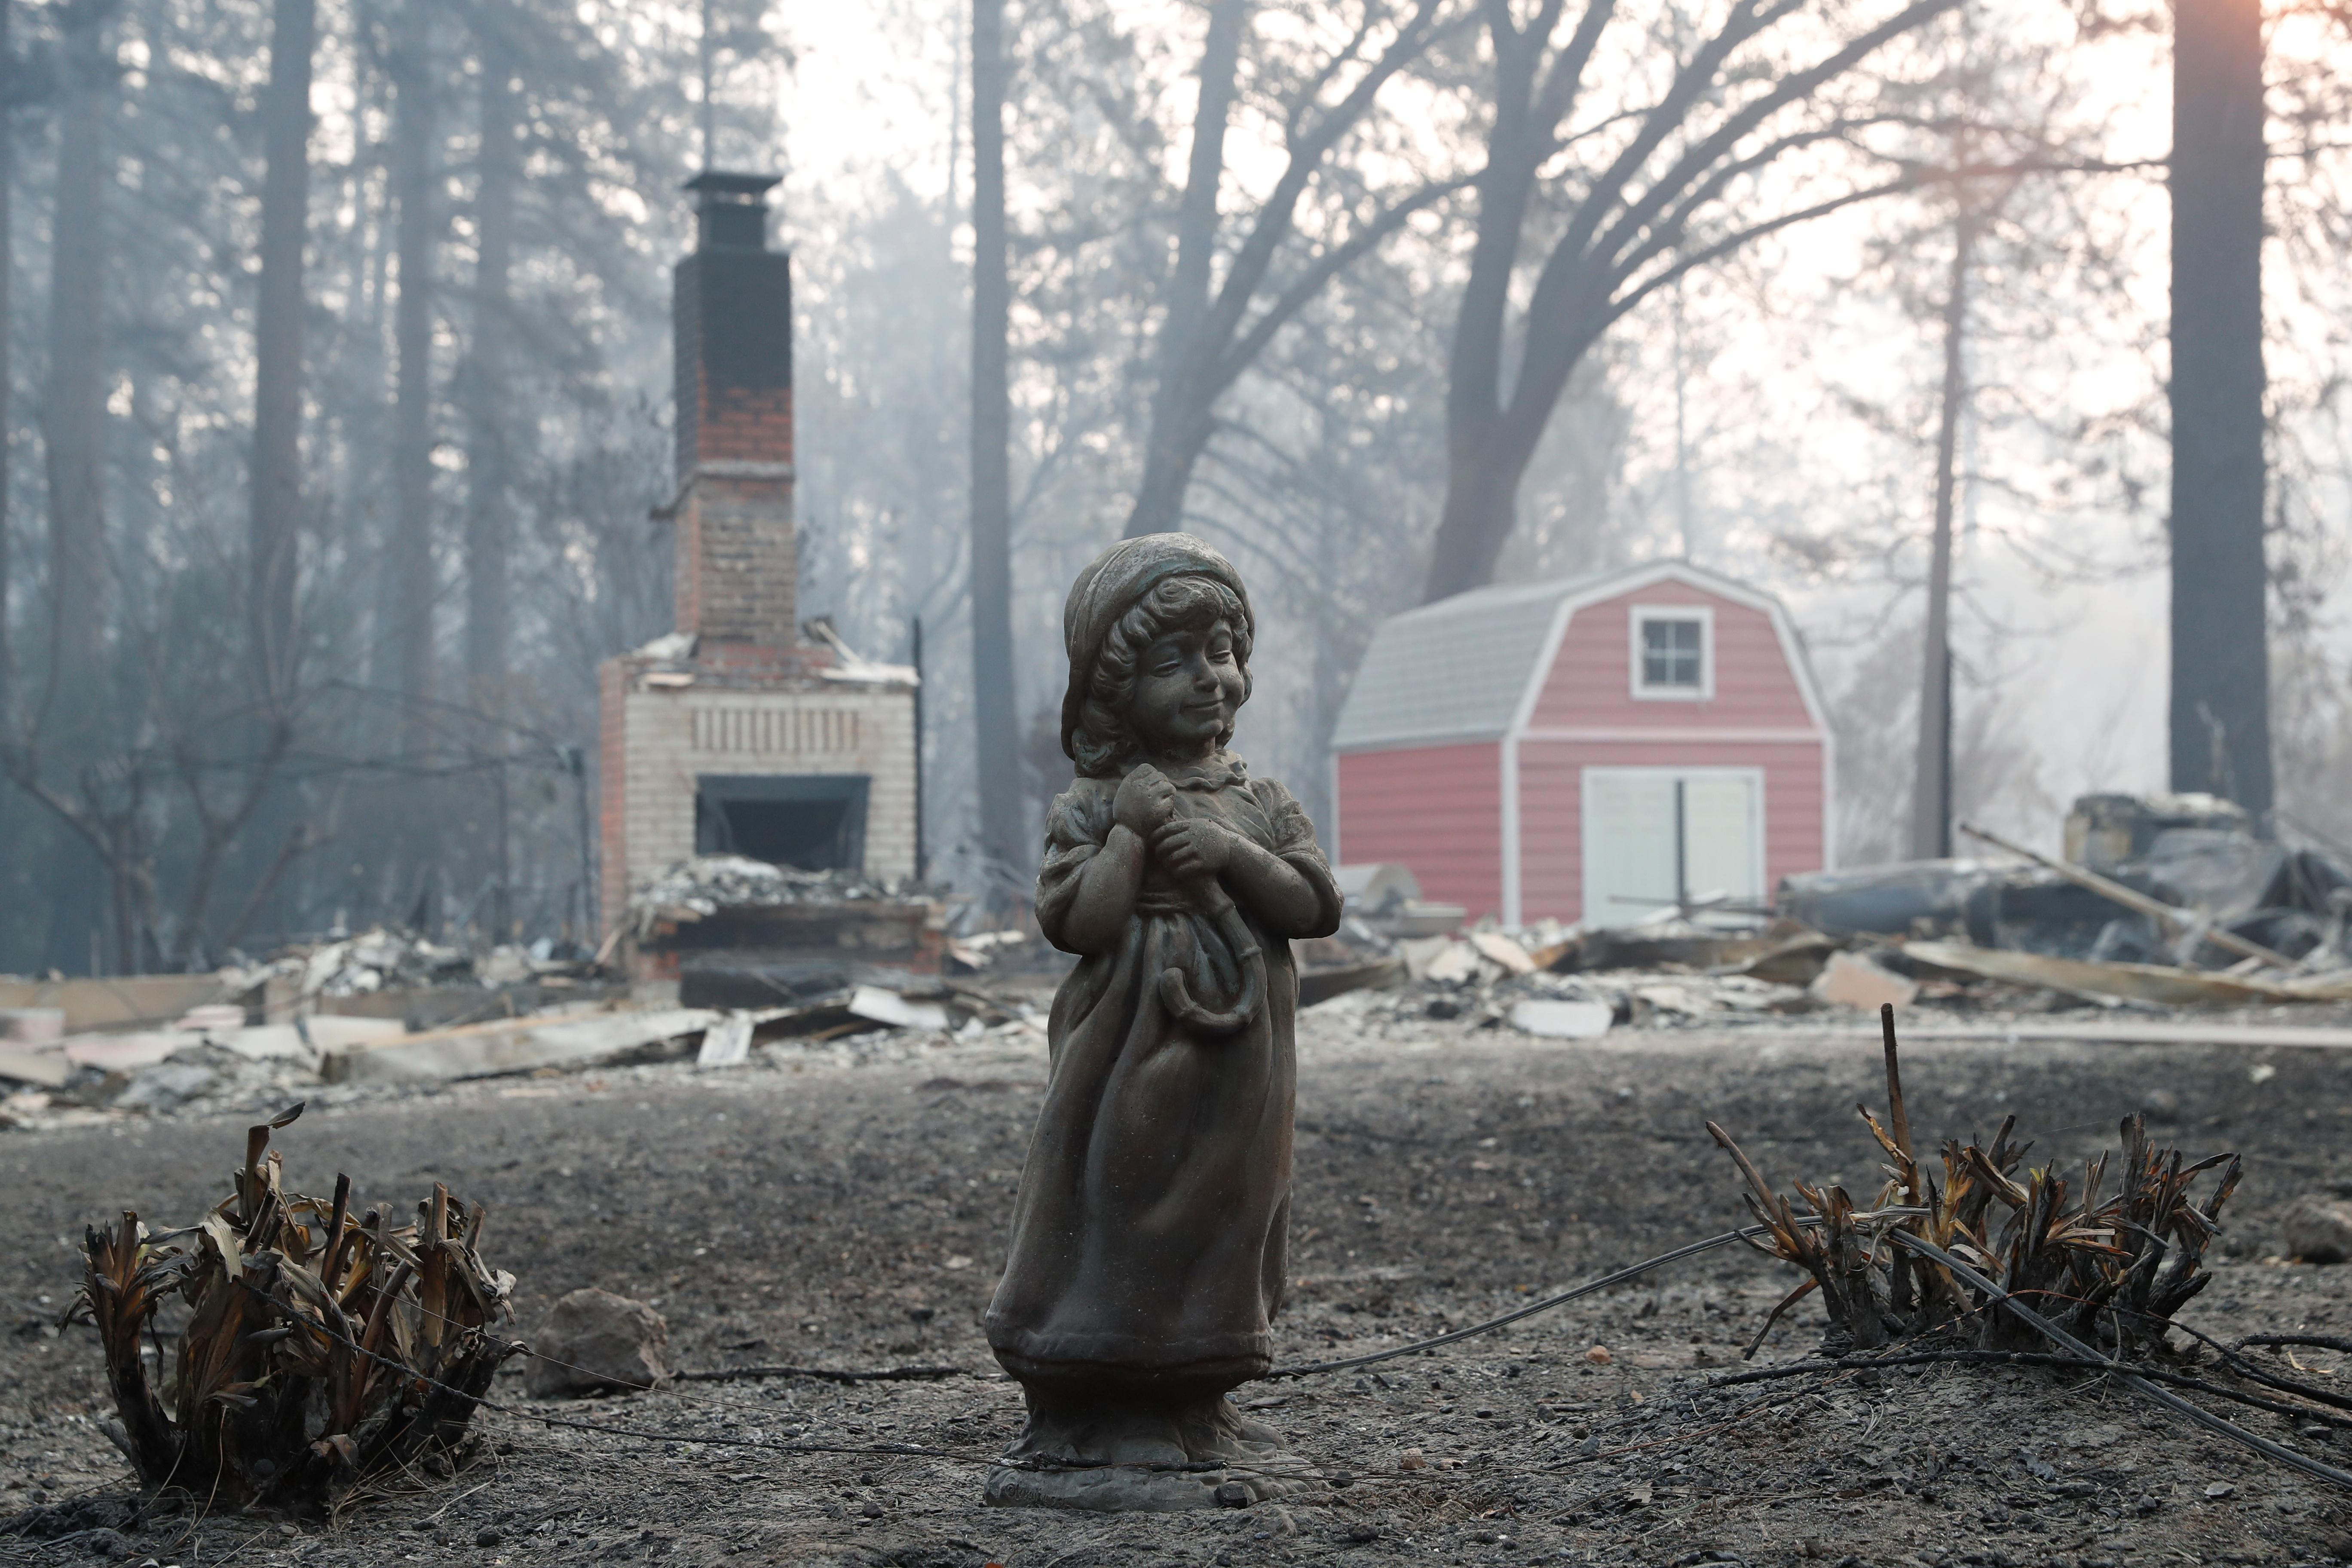 List of missing in California's deadliest wildfire drops sharply